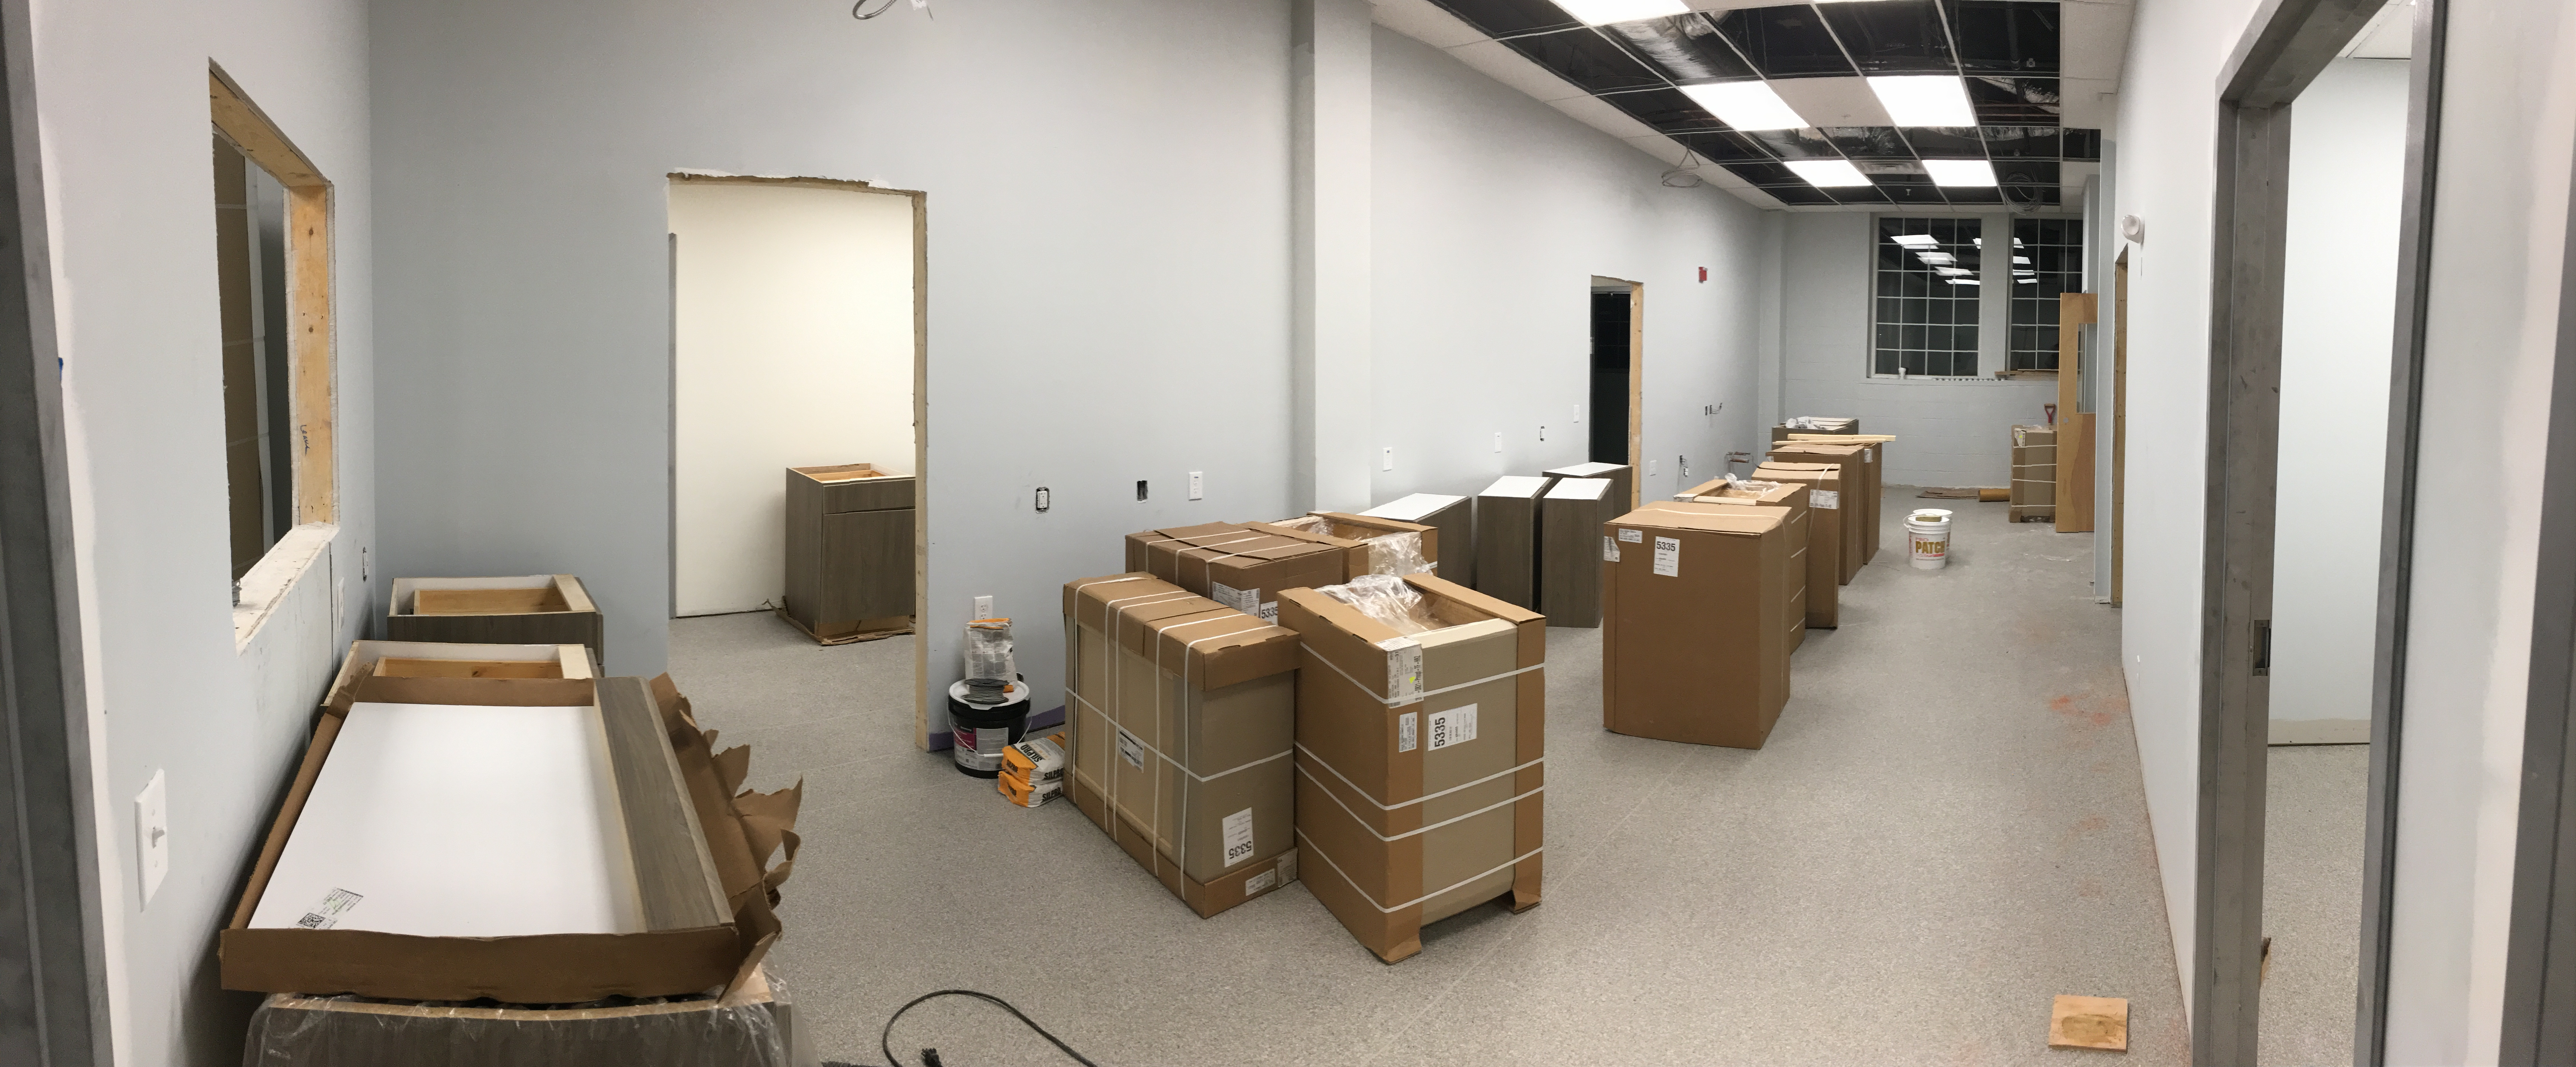 Cabinets are about to go in PMAH Vet in Acton MA